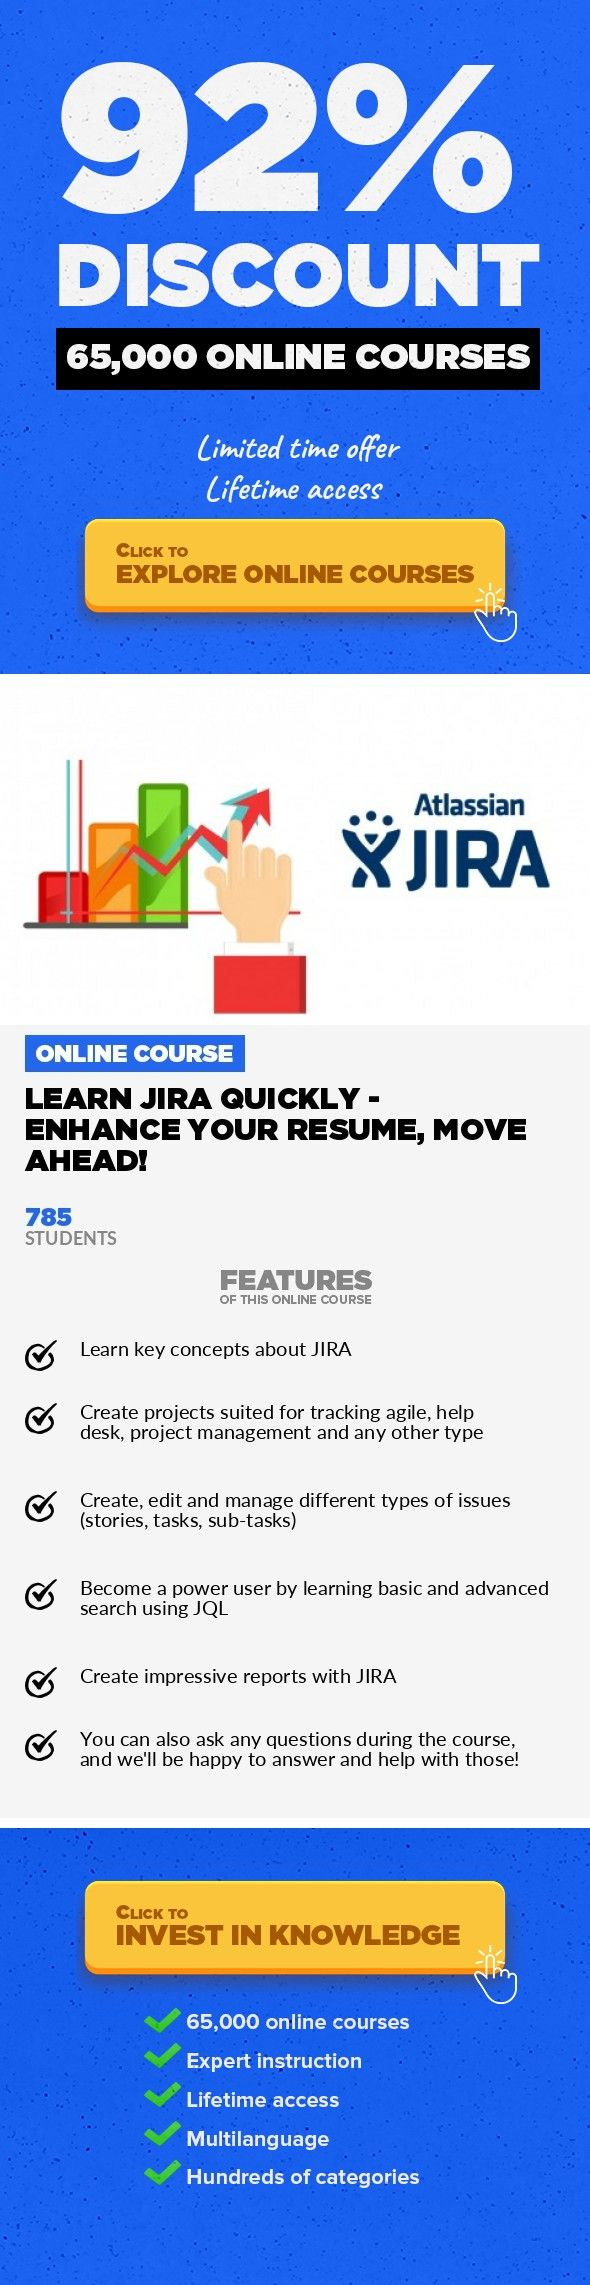 learn jira quickly enhance your resume move ahead development